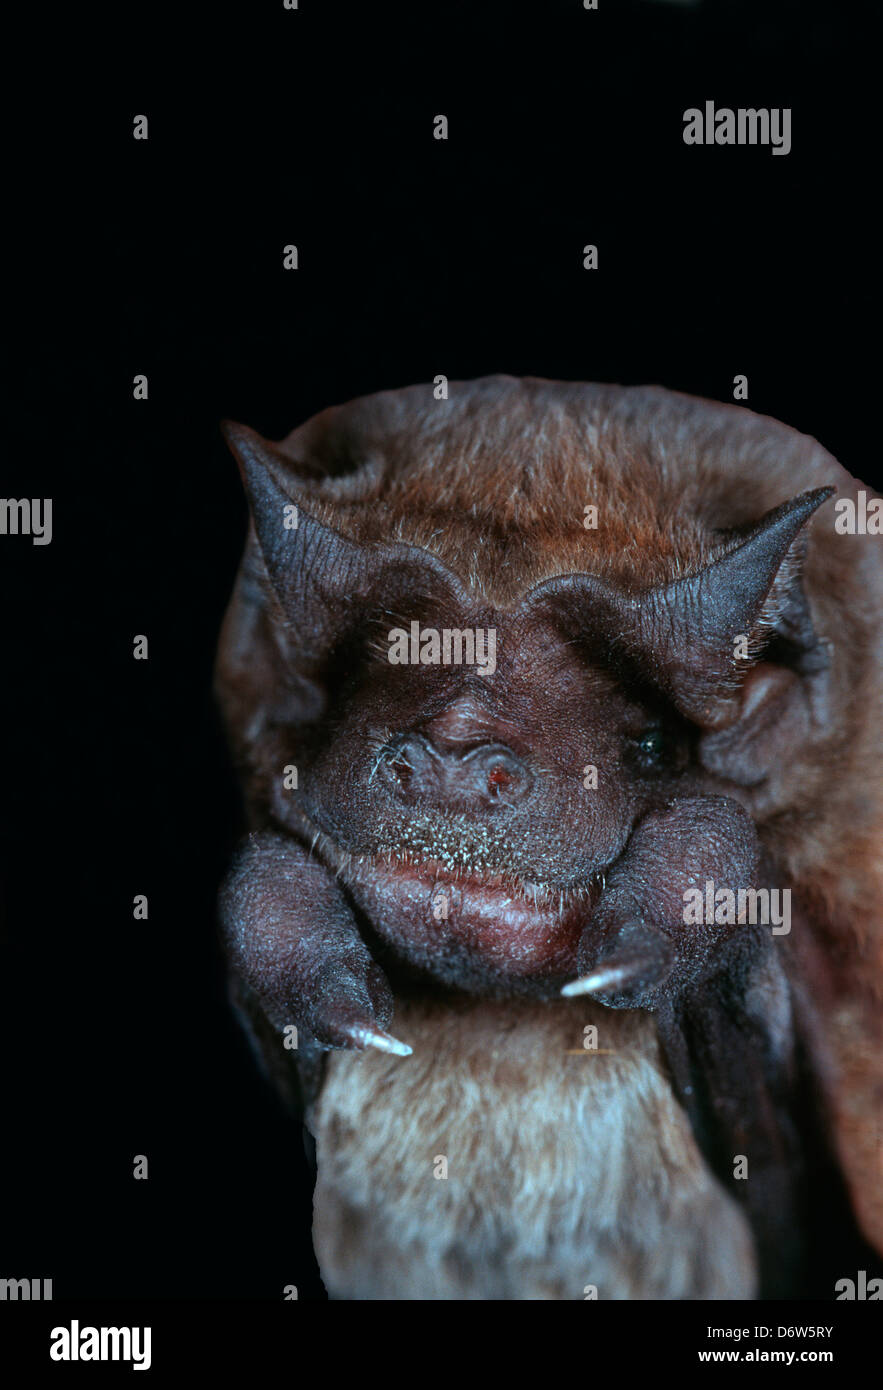 USA, Florida, Velvety Free-tailed Bat (Molossus molossus) Stock Photo